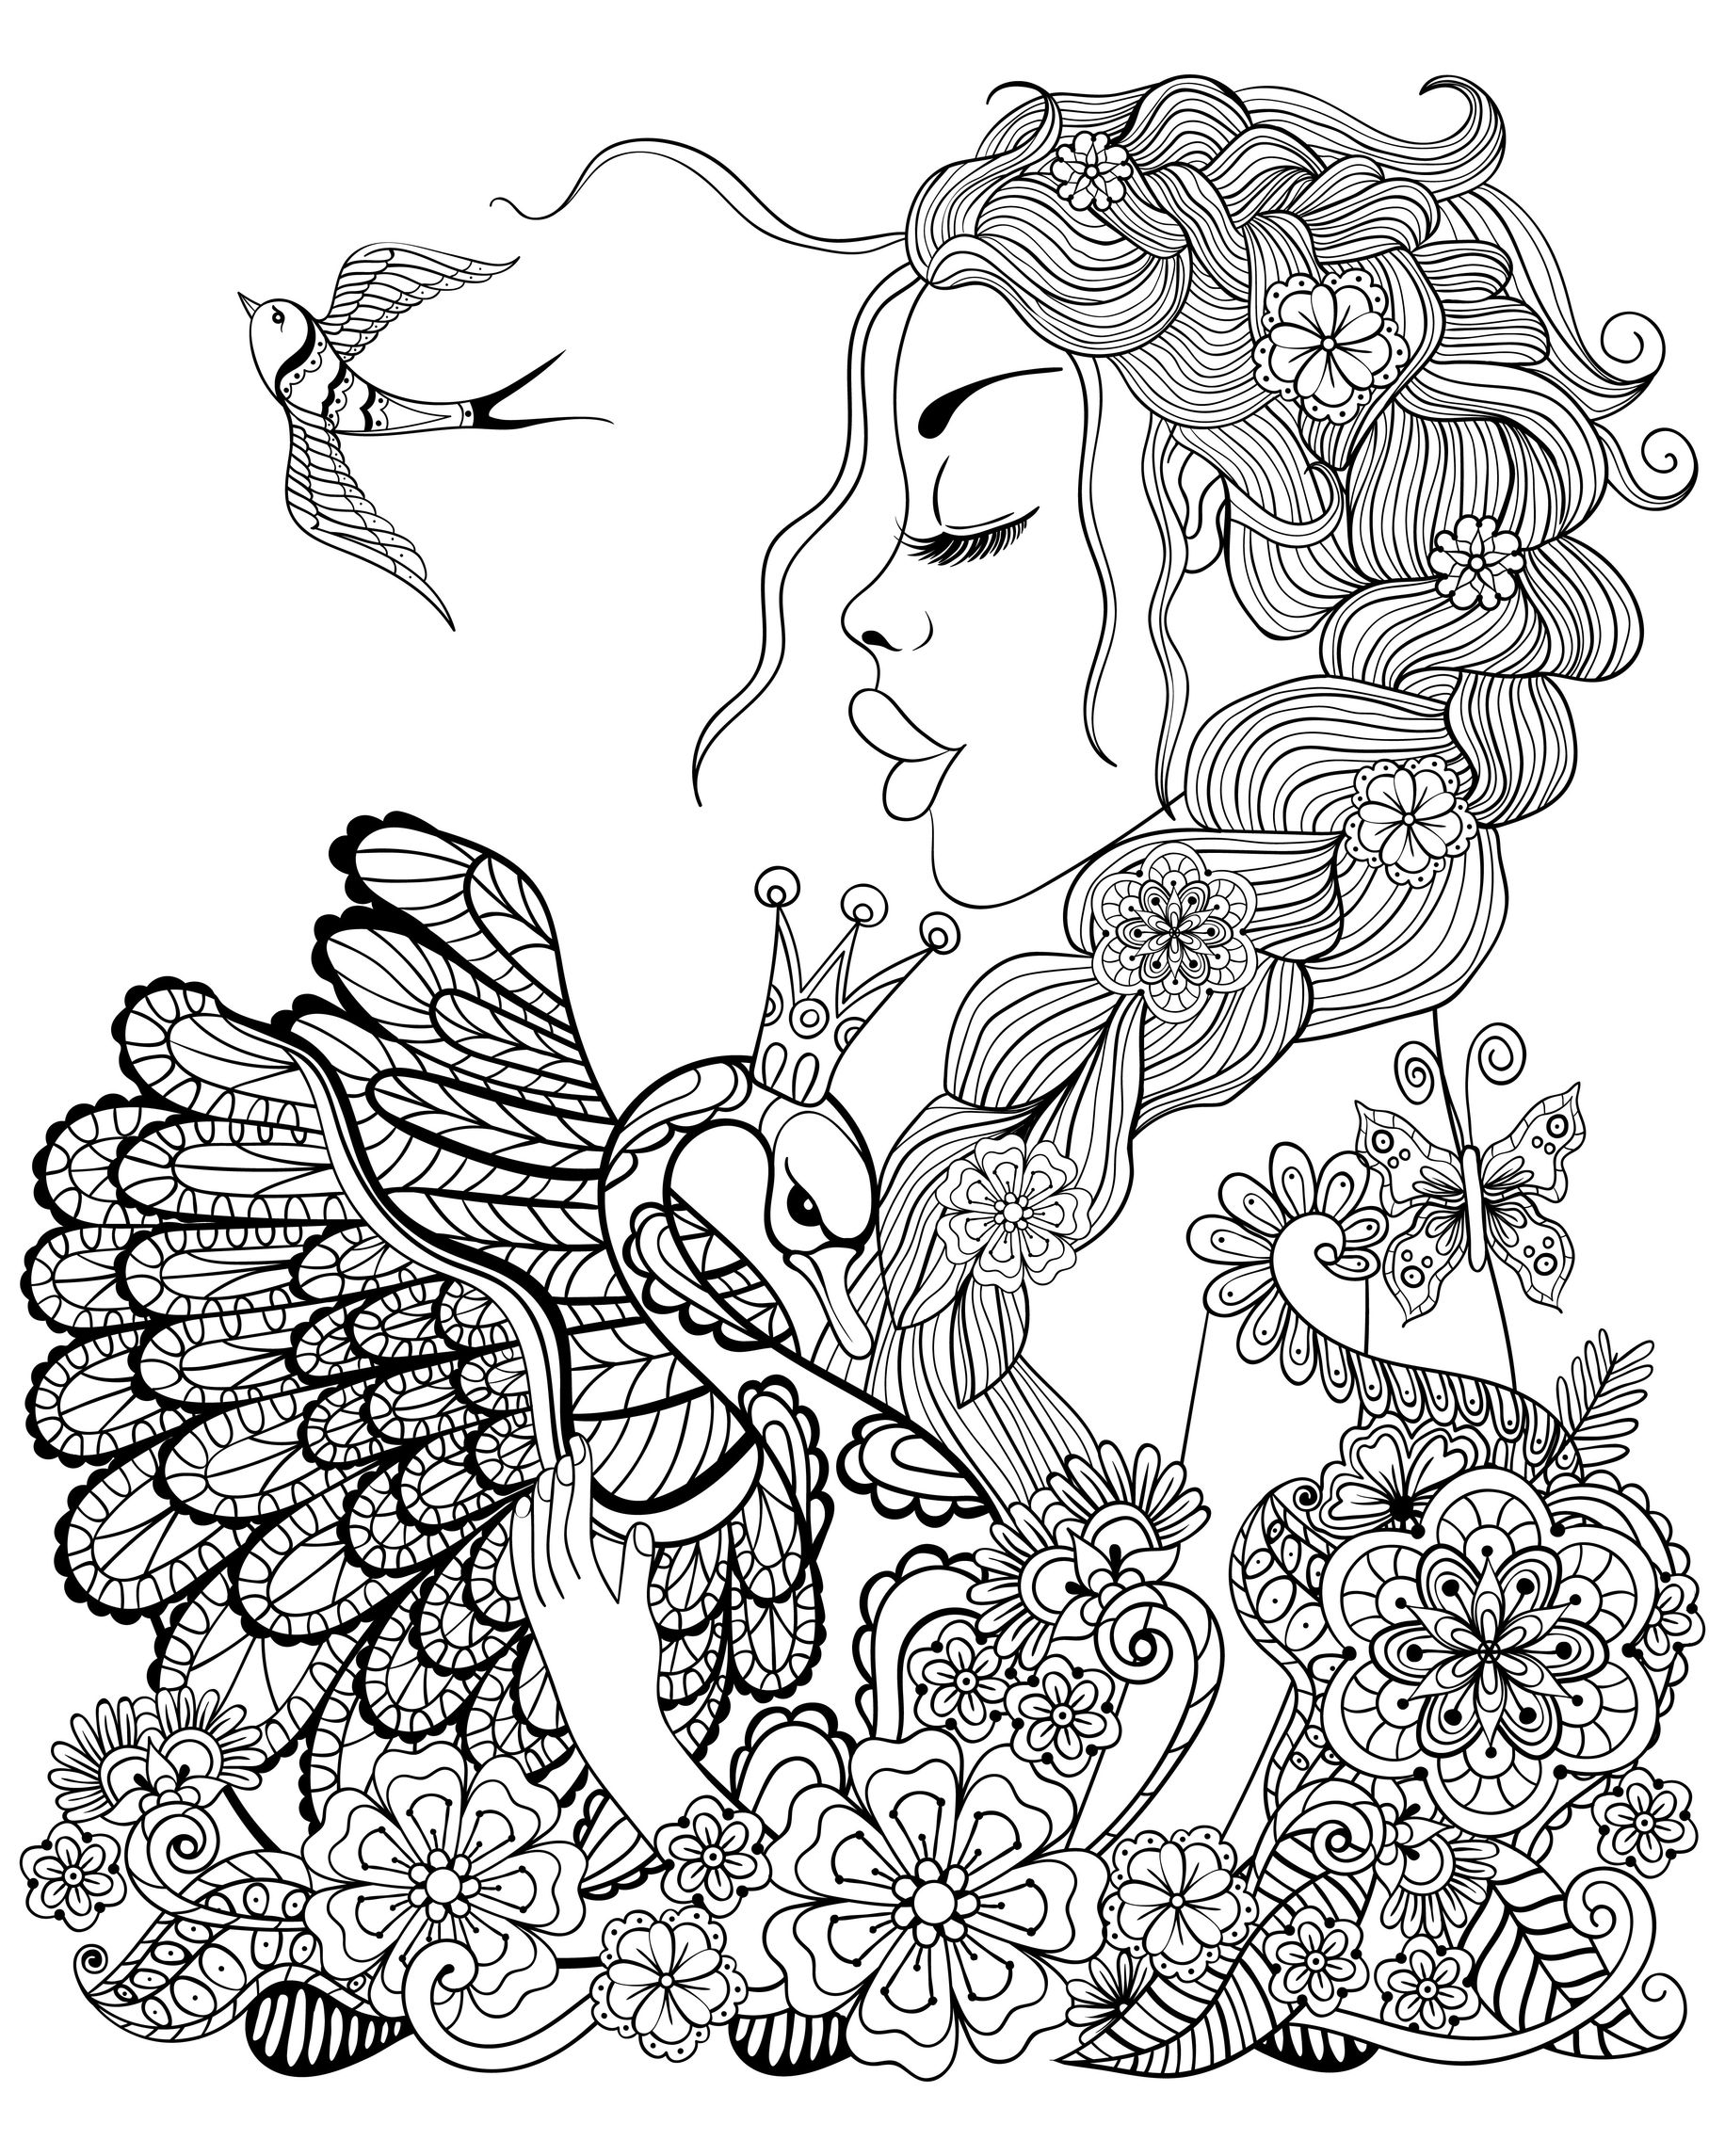 forest fairy with wreath on head hugging swan with flowers and leaves